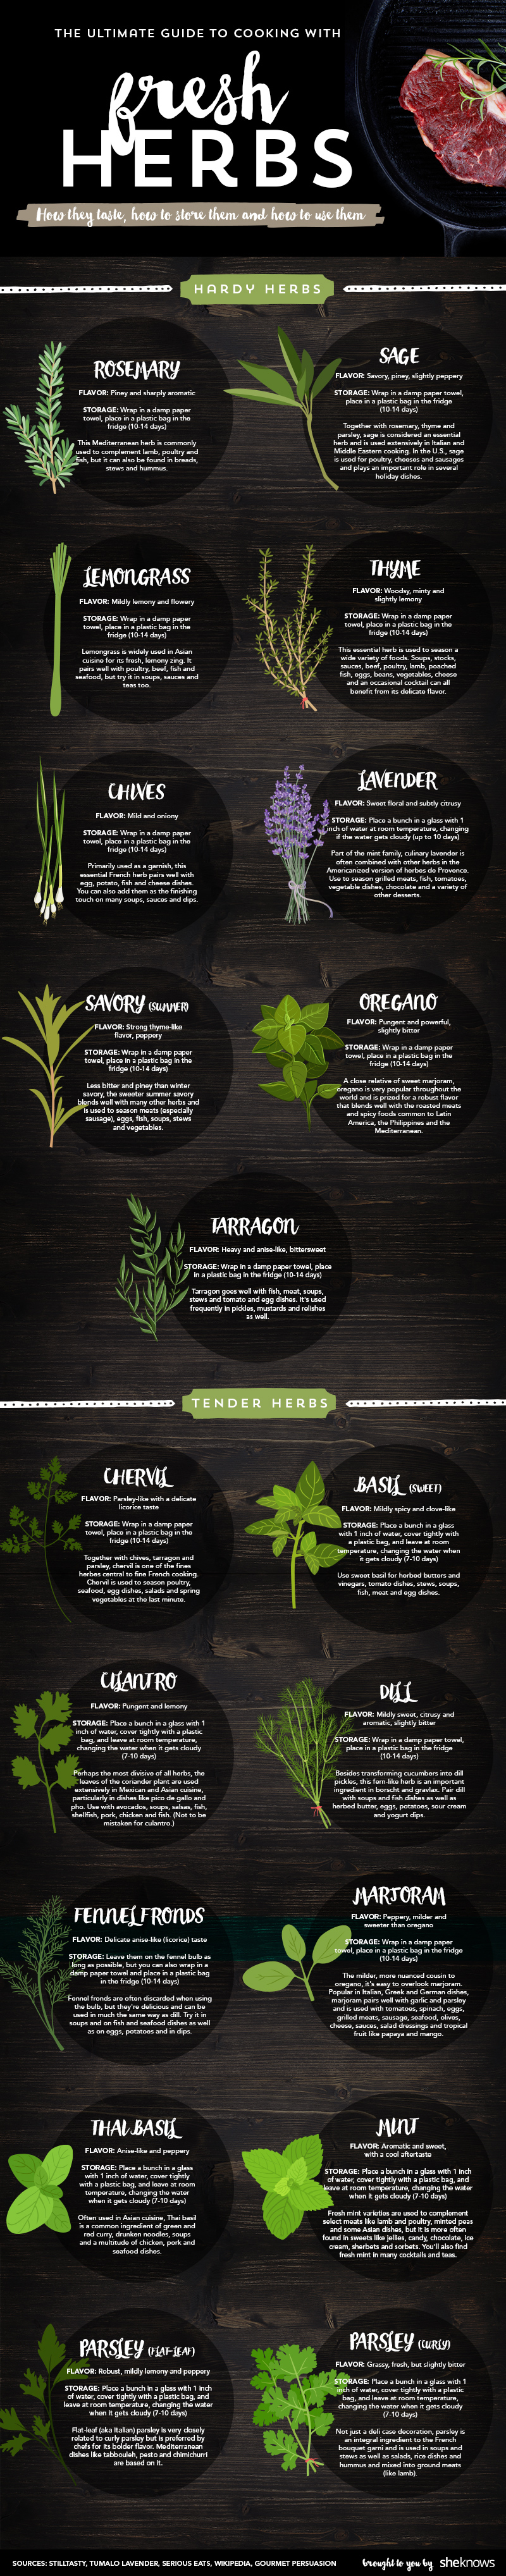 The Ultimate Guide to Cooking With Fresh Herbs